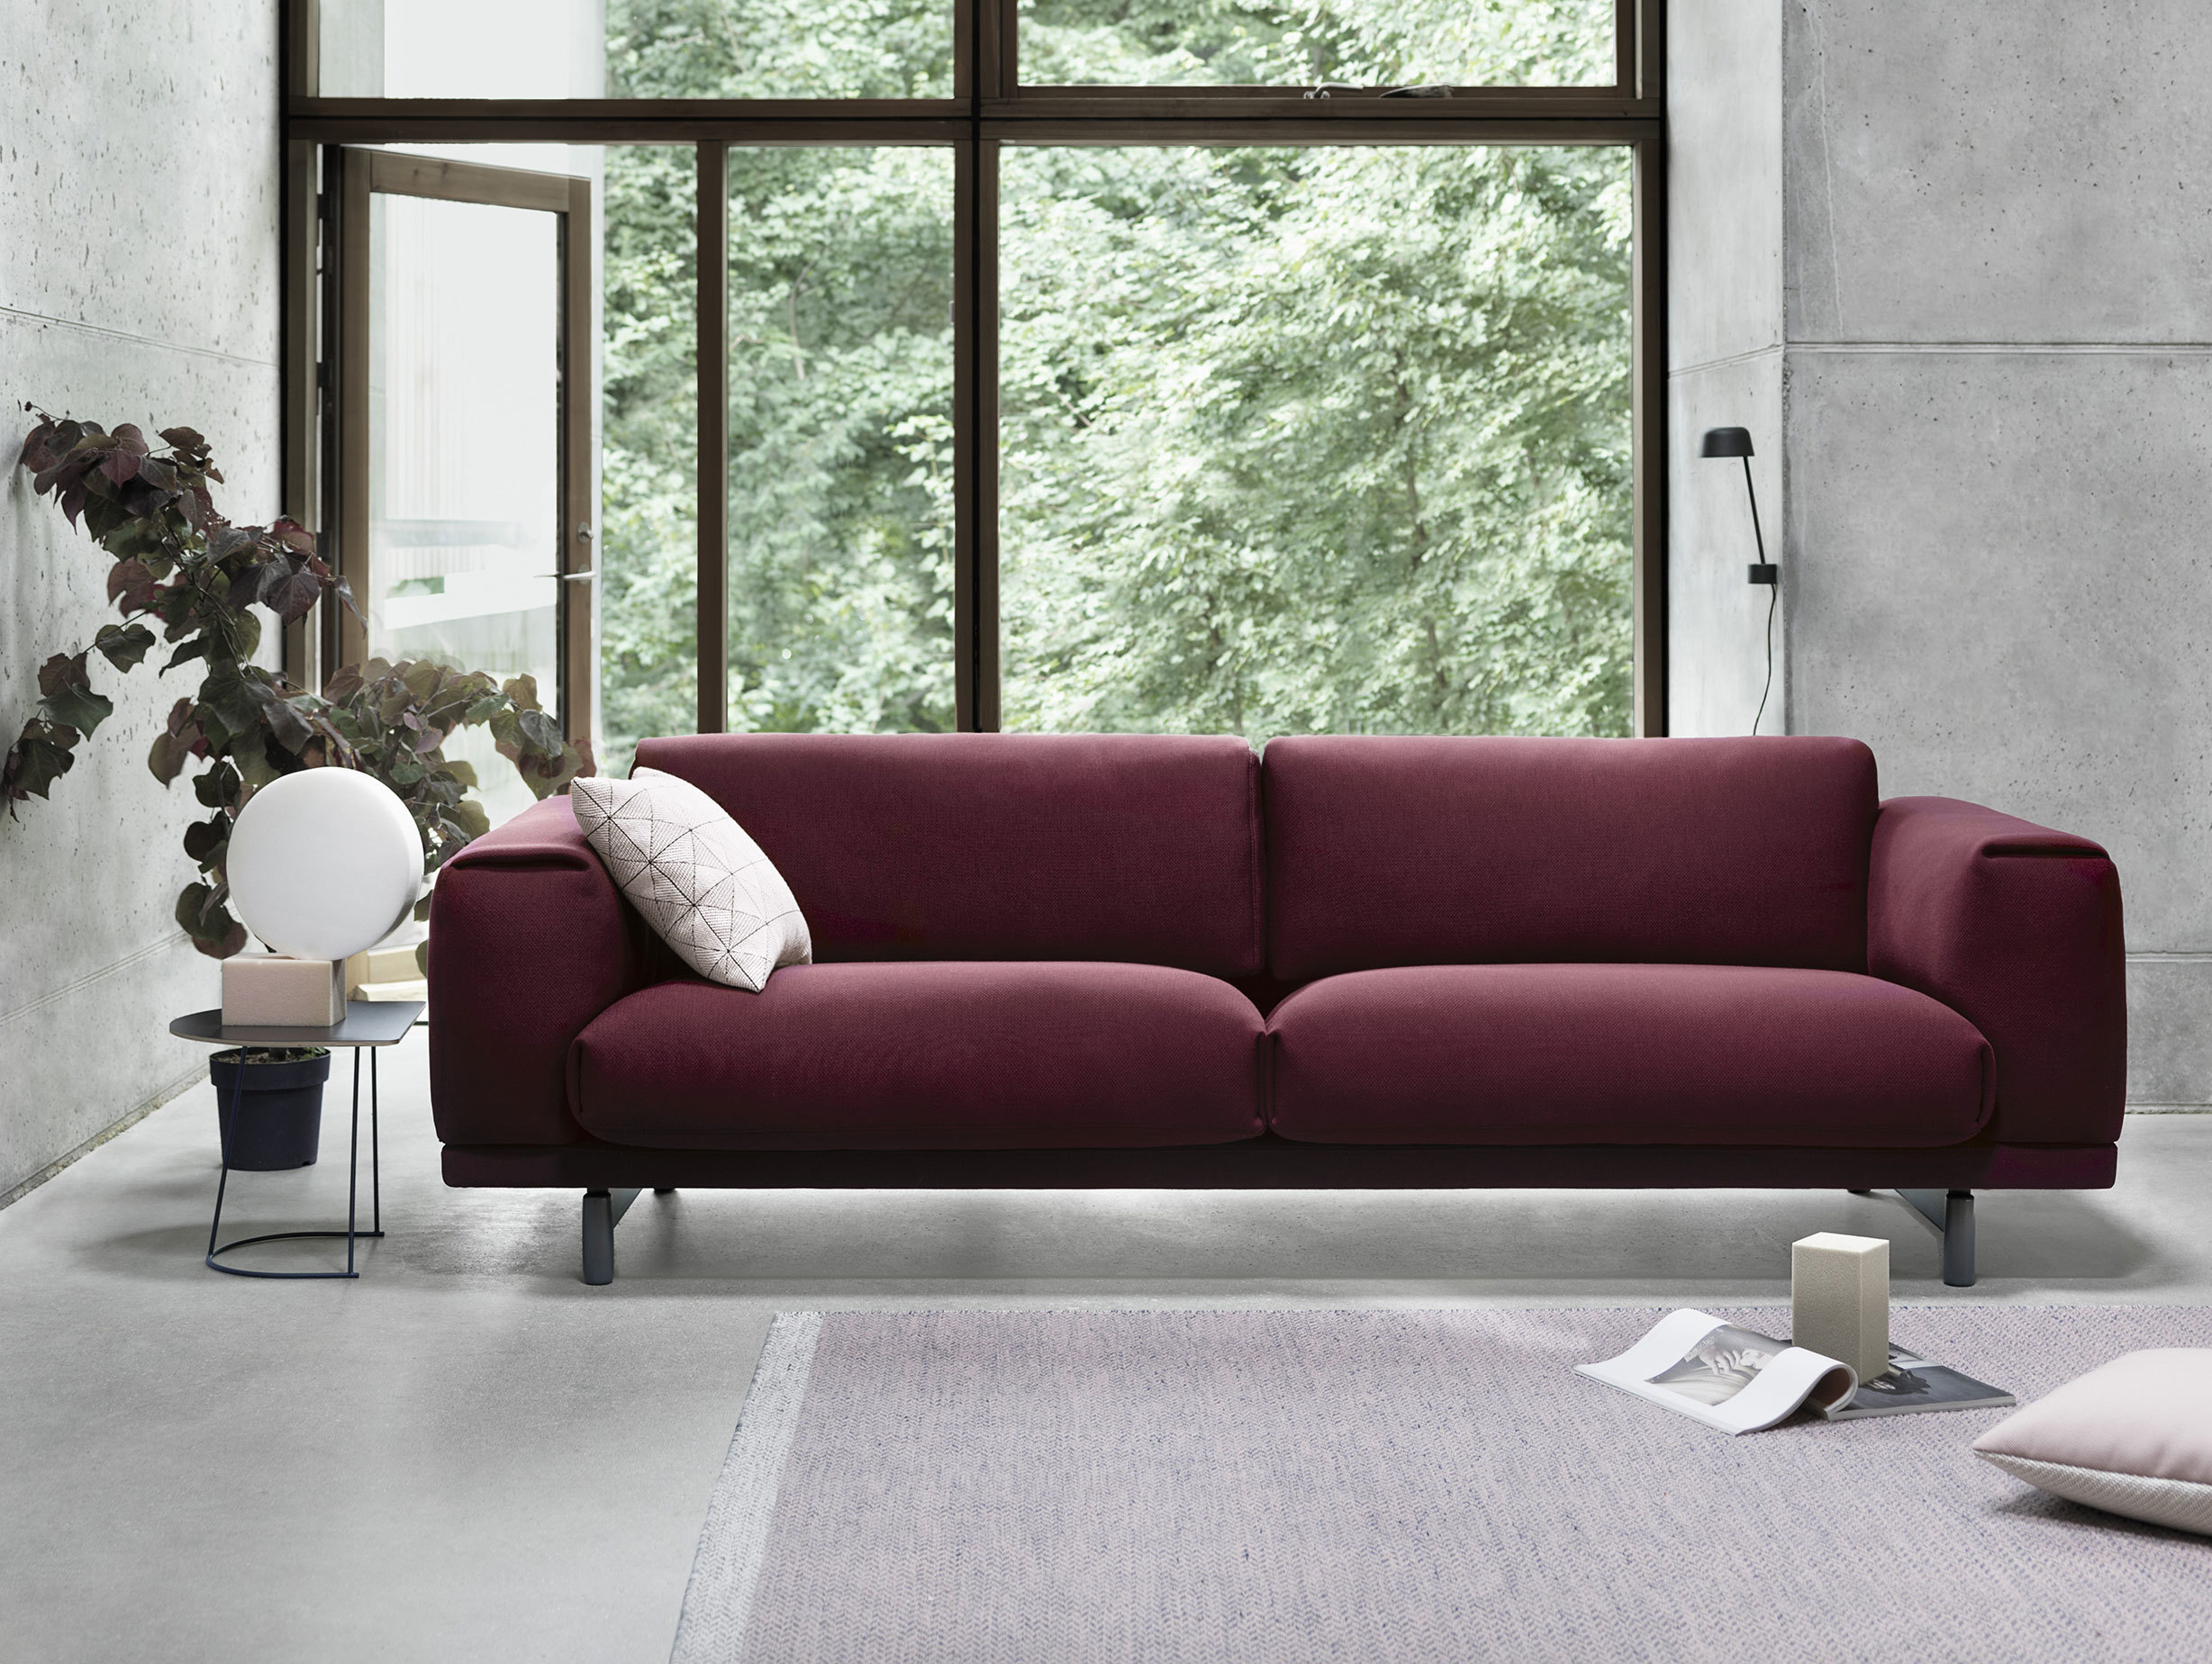 Muuto Rest Sofa Pitch Charm Lean Tile Ply Med Res